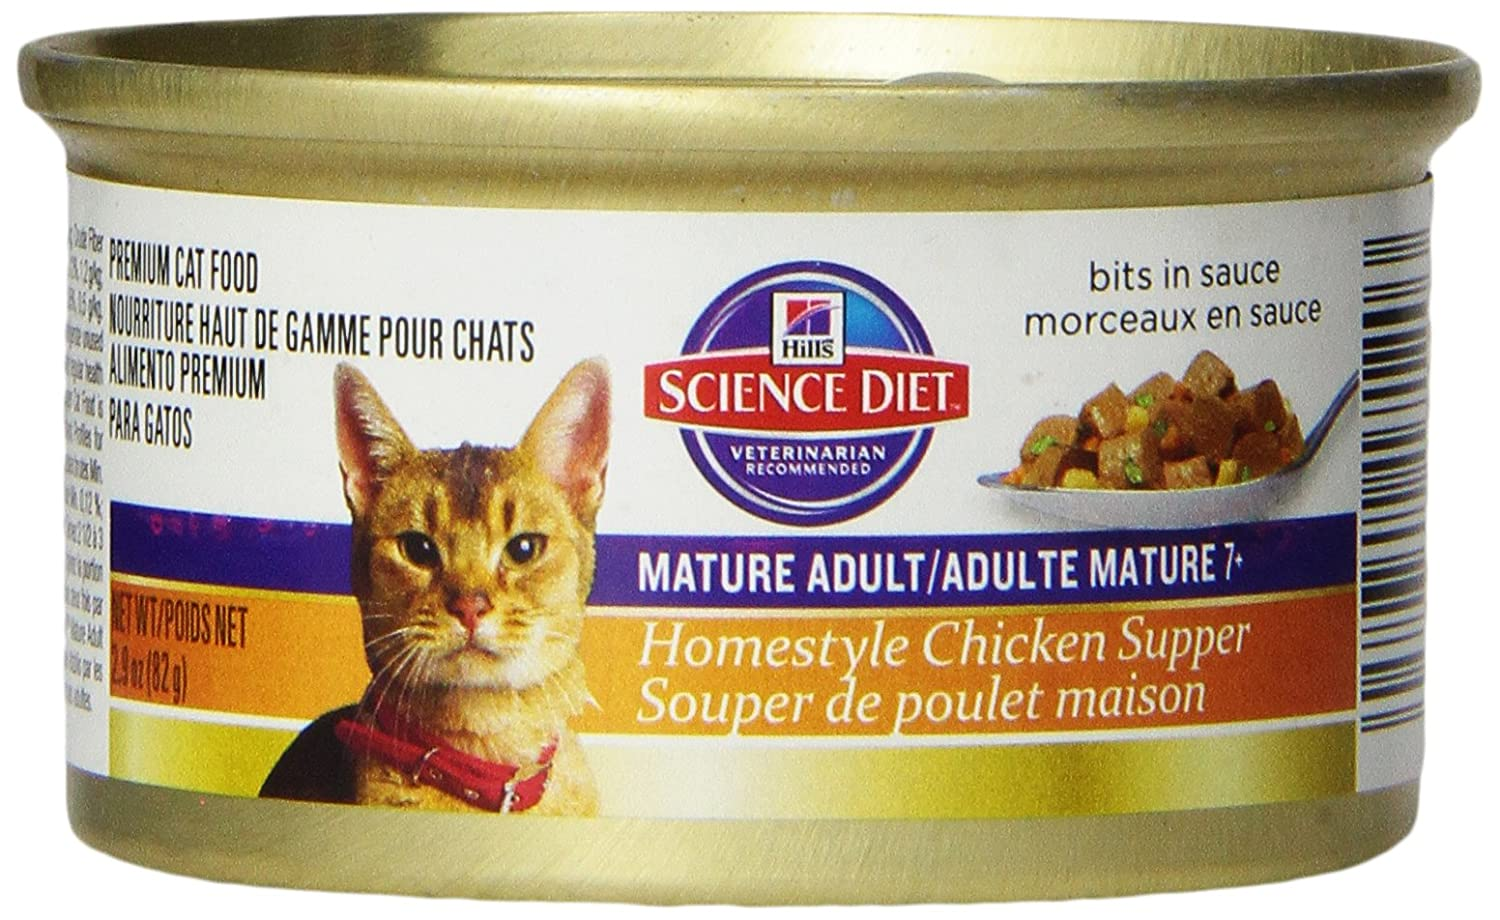 Amazon.com : HillS Science Diet Homestyle Chicken Supper For Mature Adult Cats, 2.9 Oz, 24-Pack : Canned Wet Pet Food : Pet Supplies